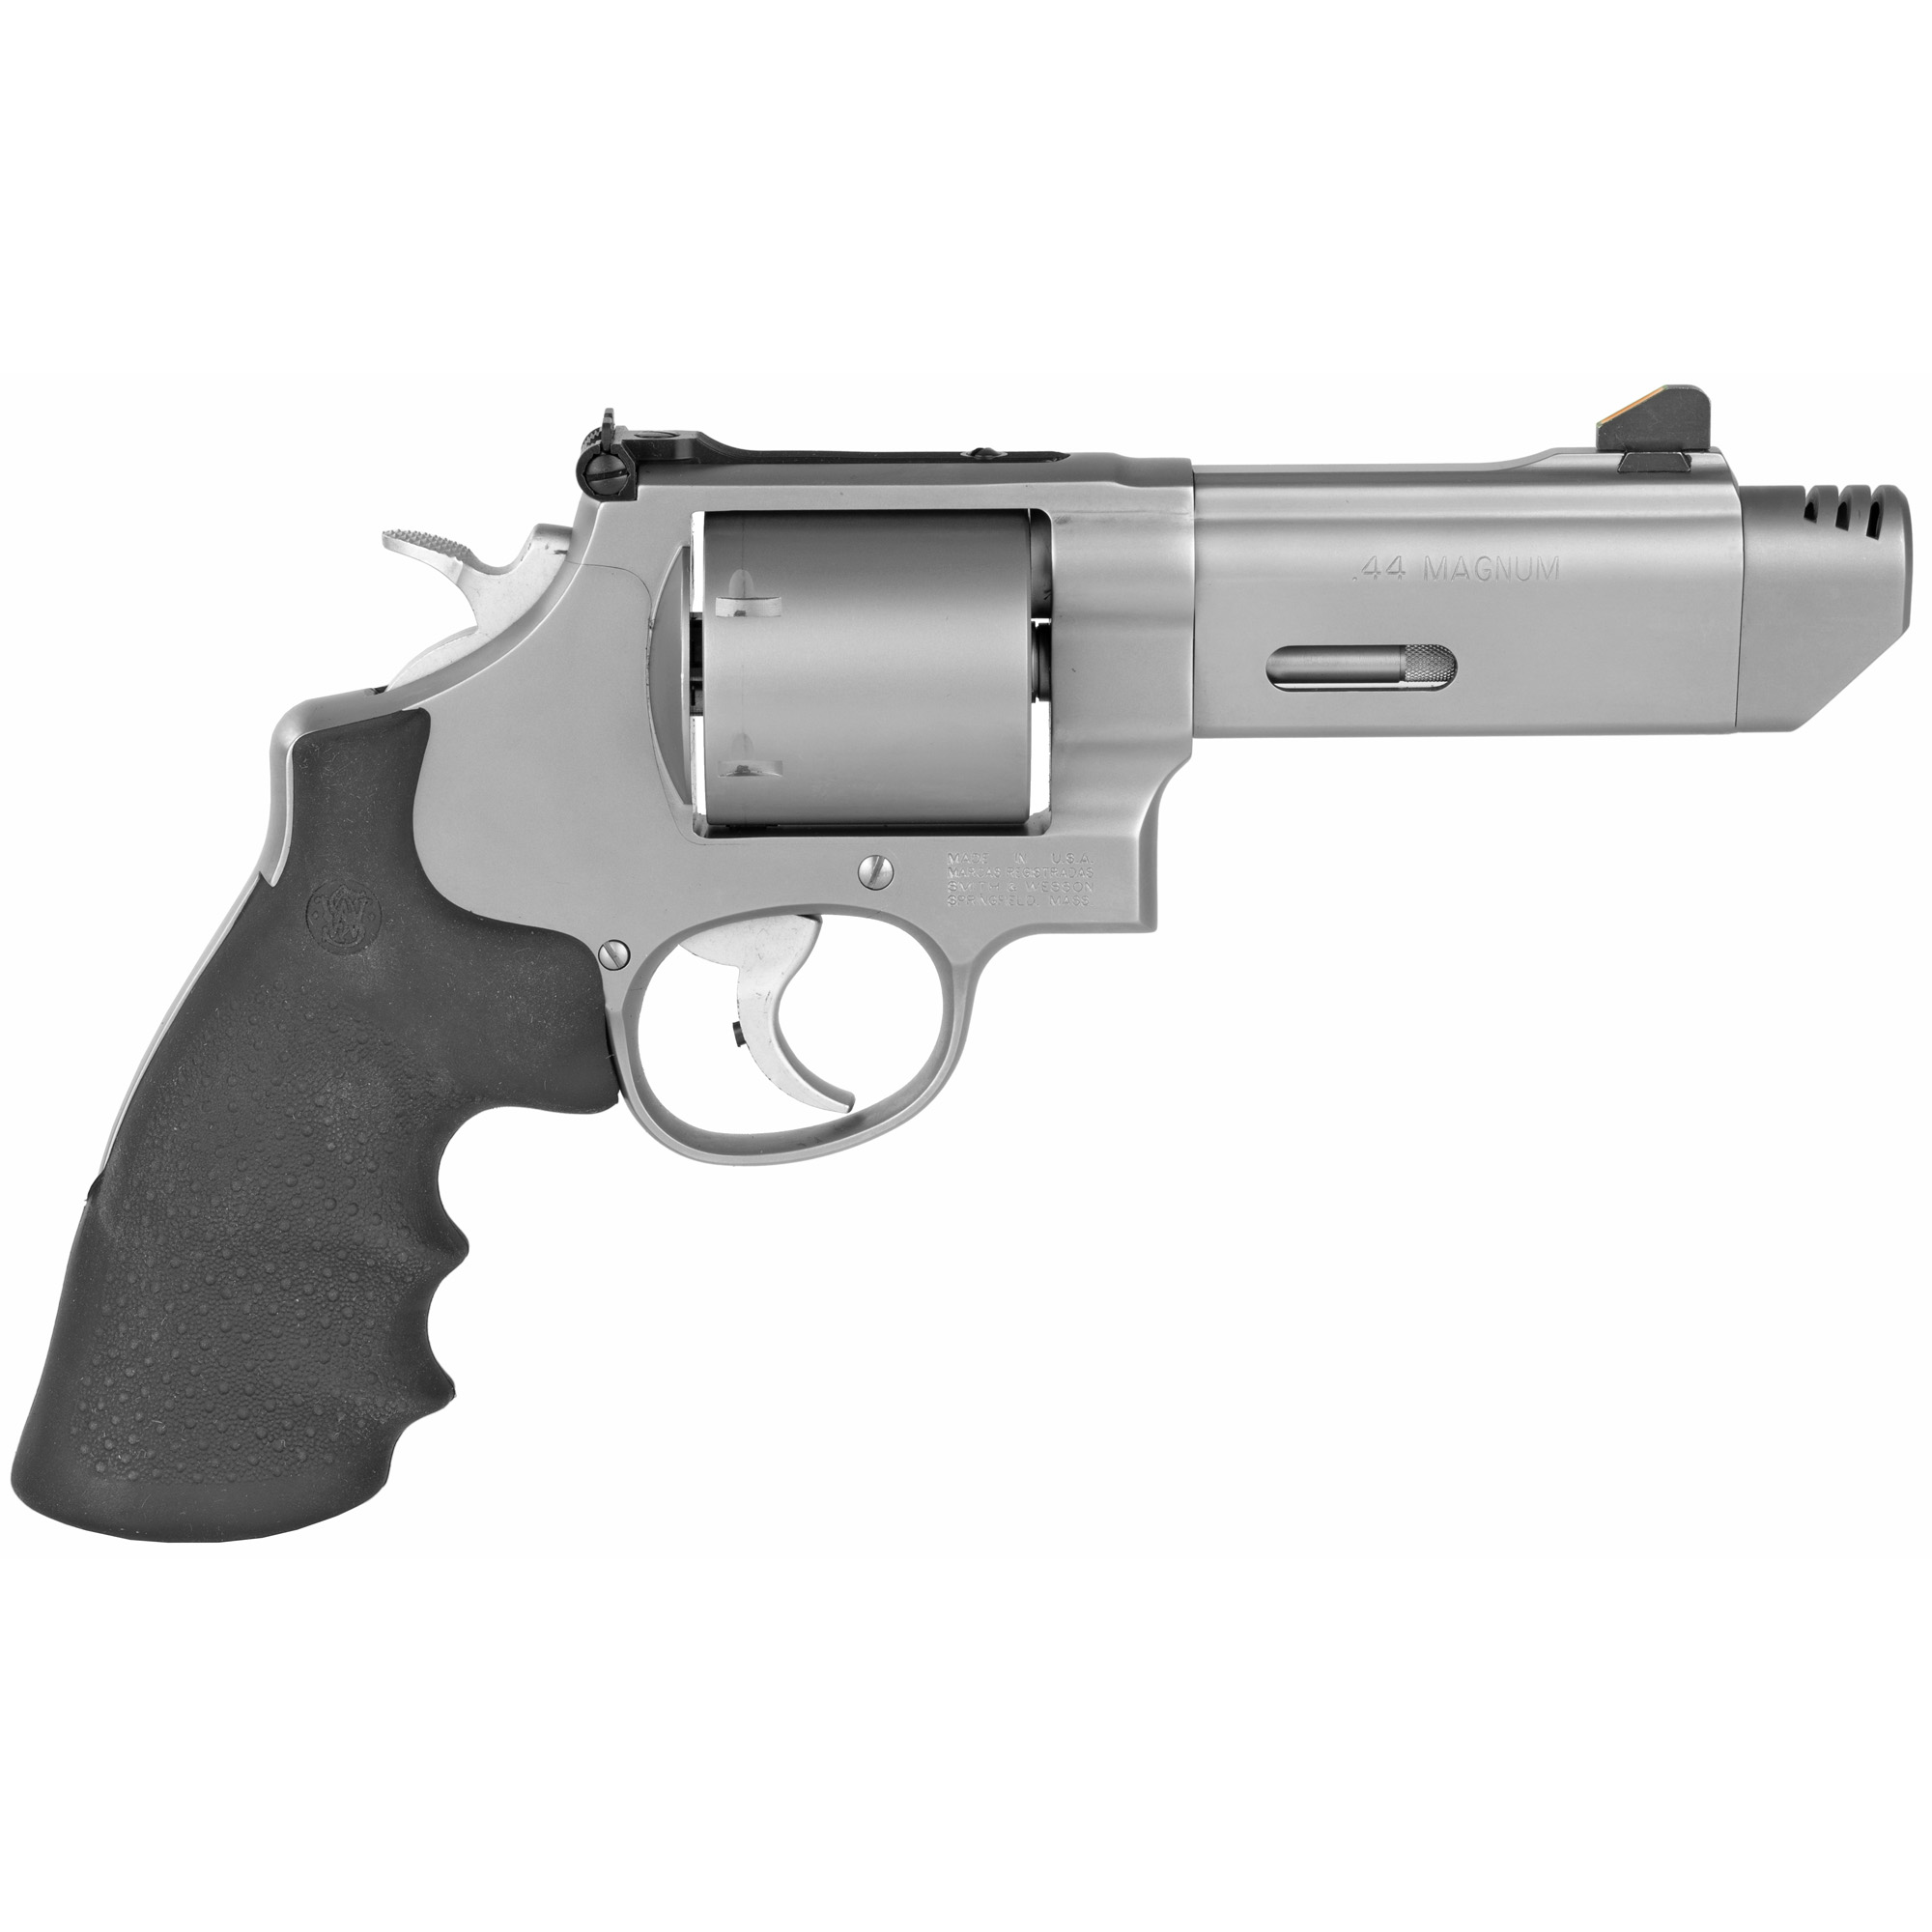 Smith & Wesson Model 629PC Six Shot, 4.25 inch .44 Magnum